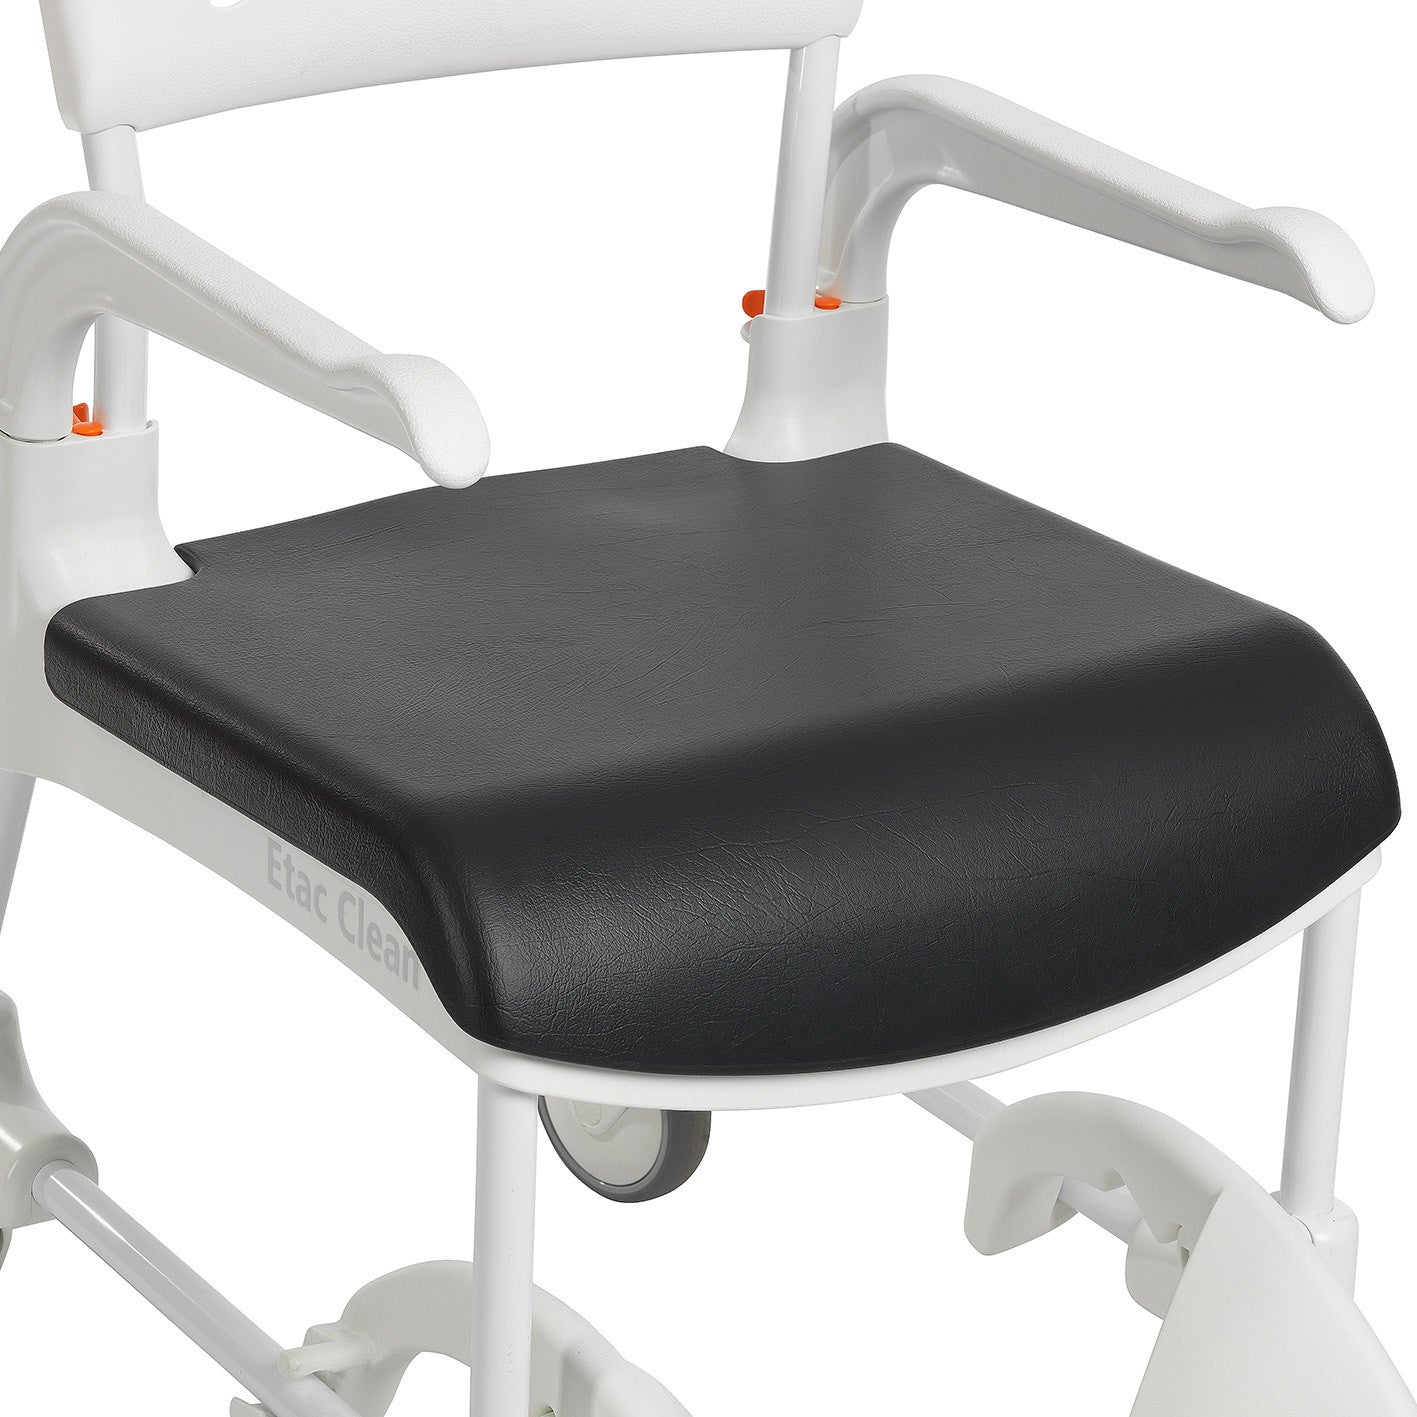 Etac Clean Shower/Commode Chair with Adjustable Height – Safe Home Pro